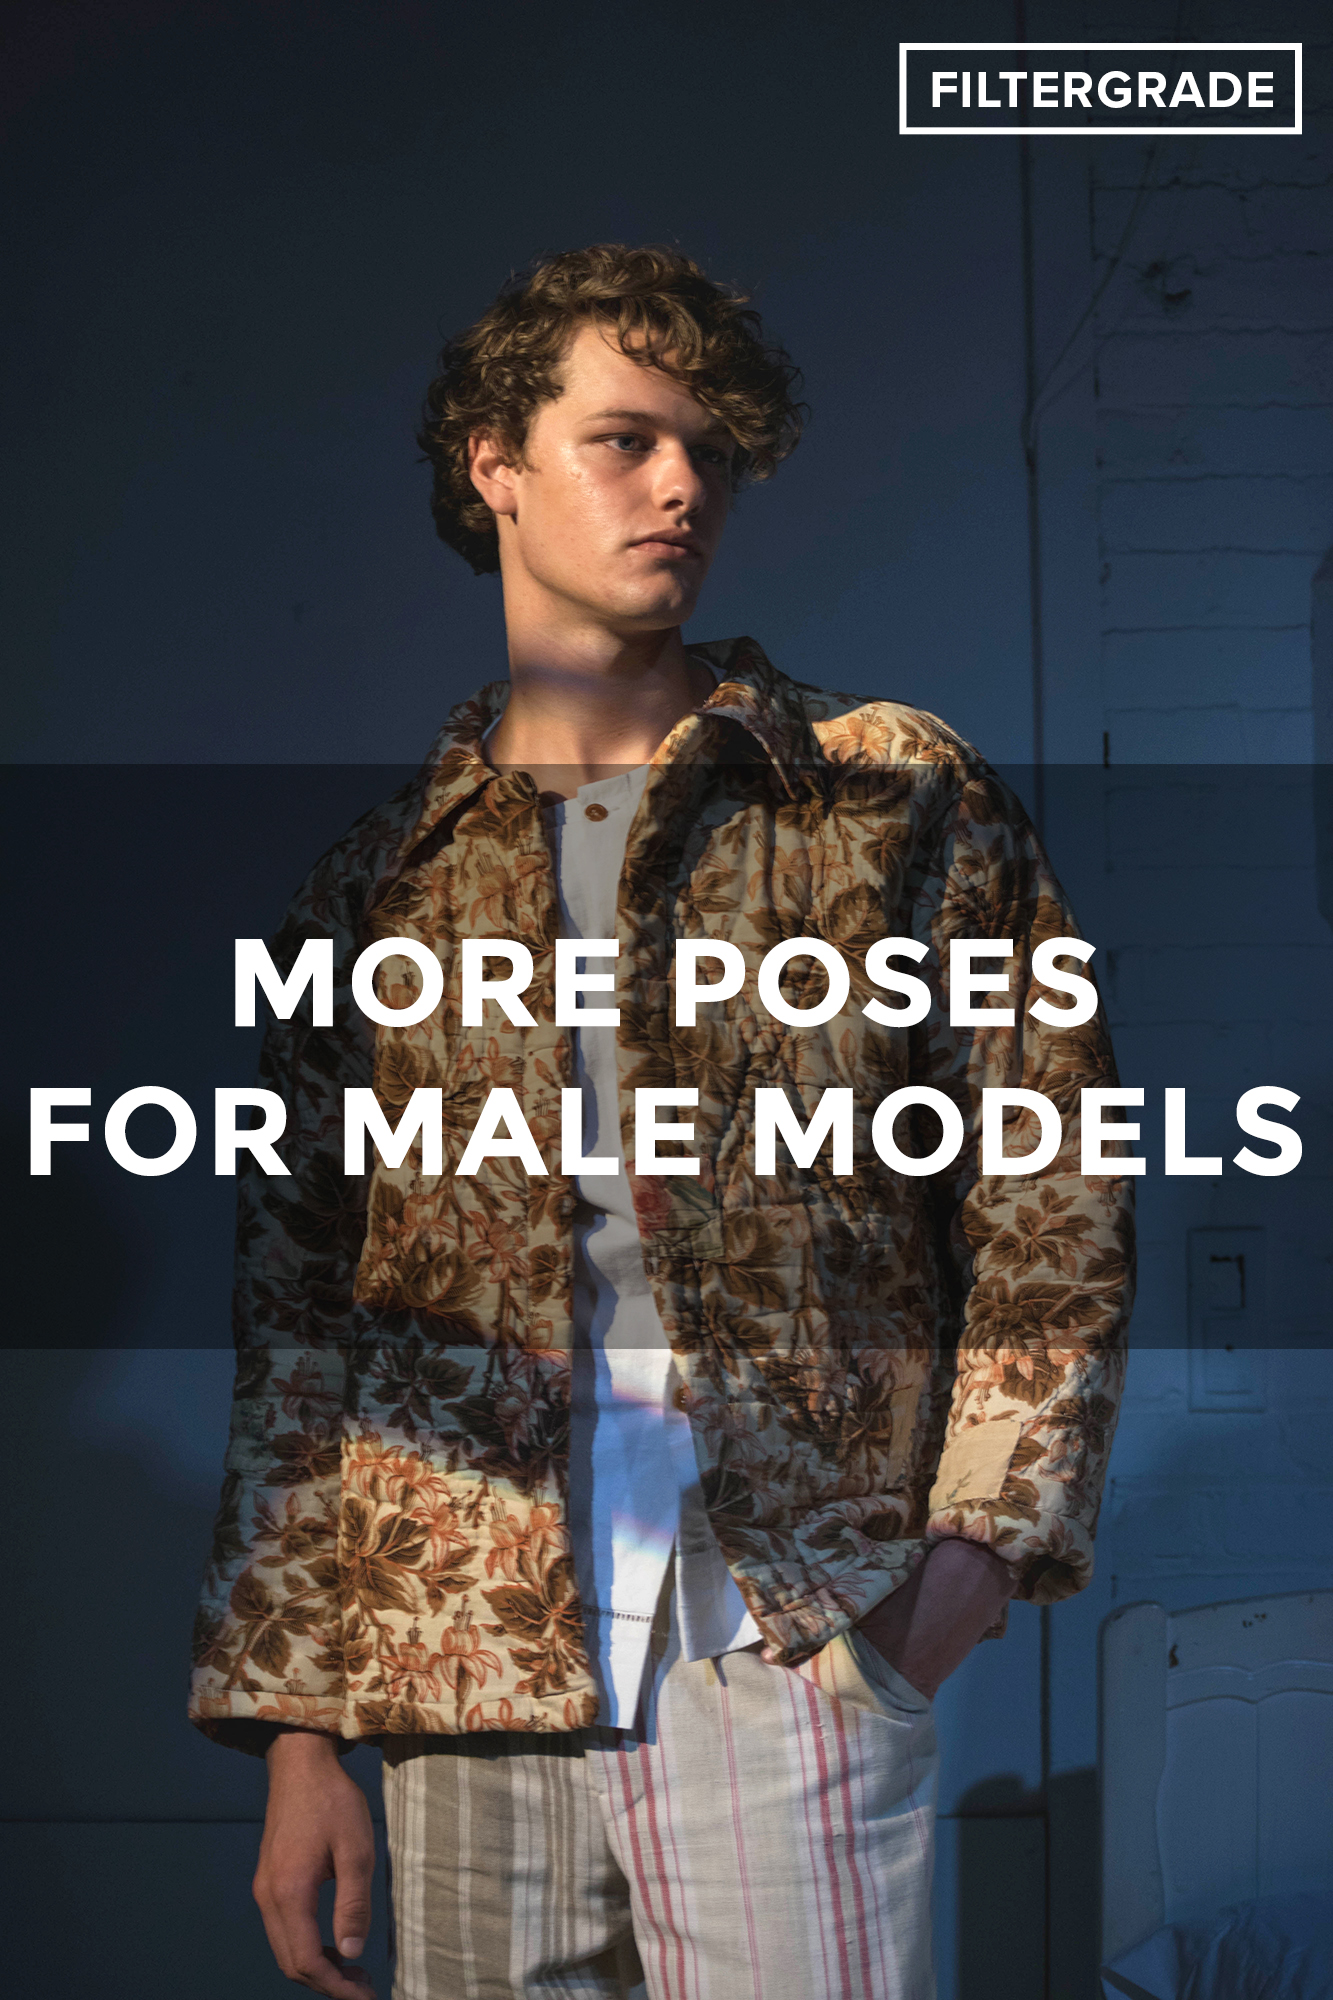 cd80ab6ee8f 18+ More Poses for Male Models - FilterGrade